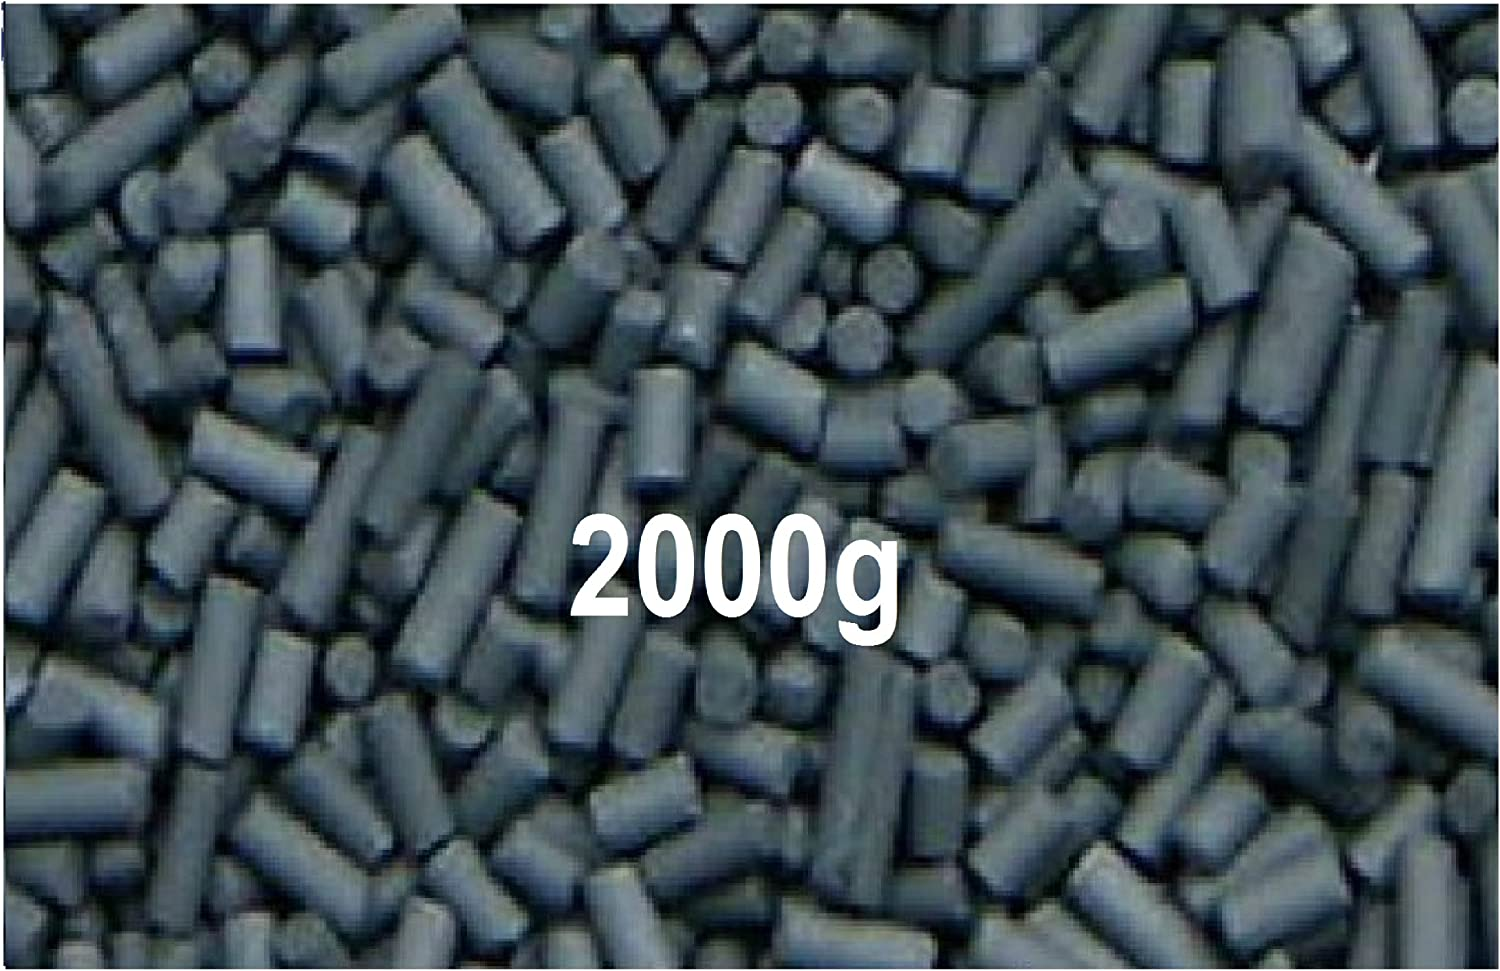 1-2kg Activated Carbon Charcoal Granulated for Aquariums Fish Tank Filters Media